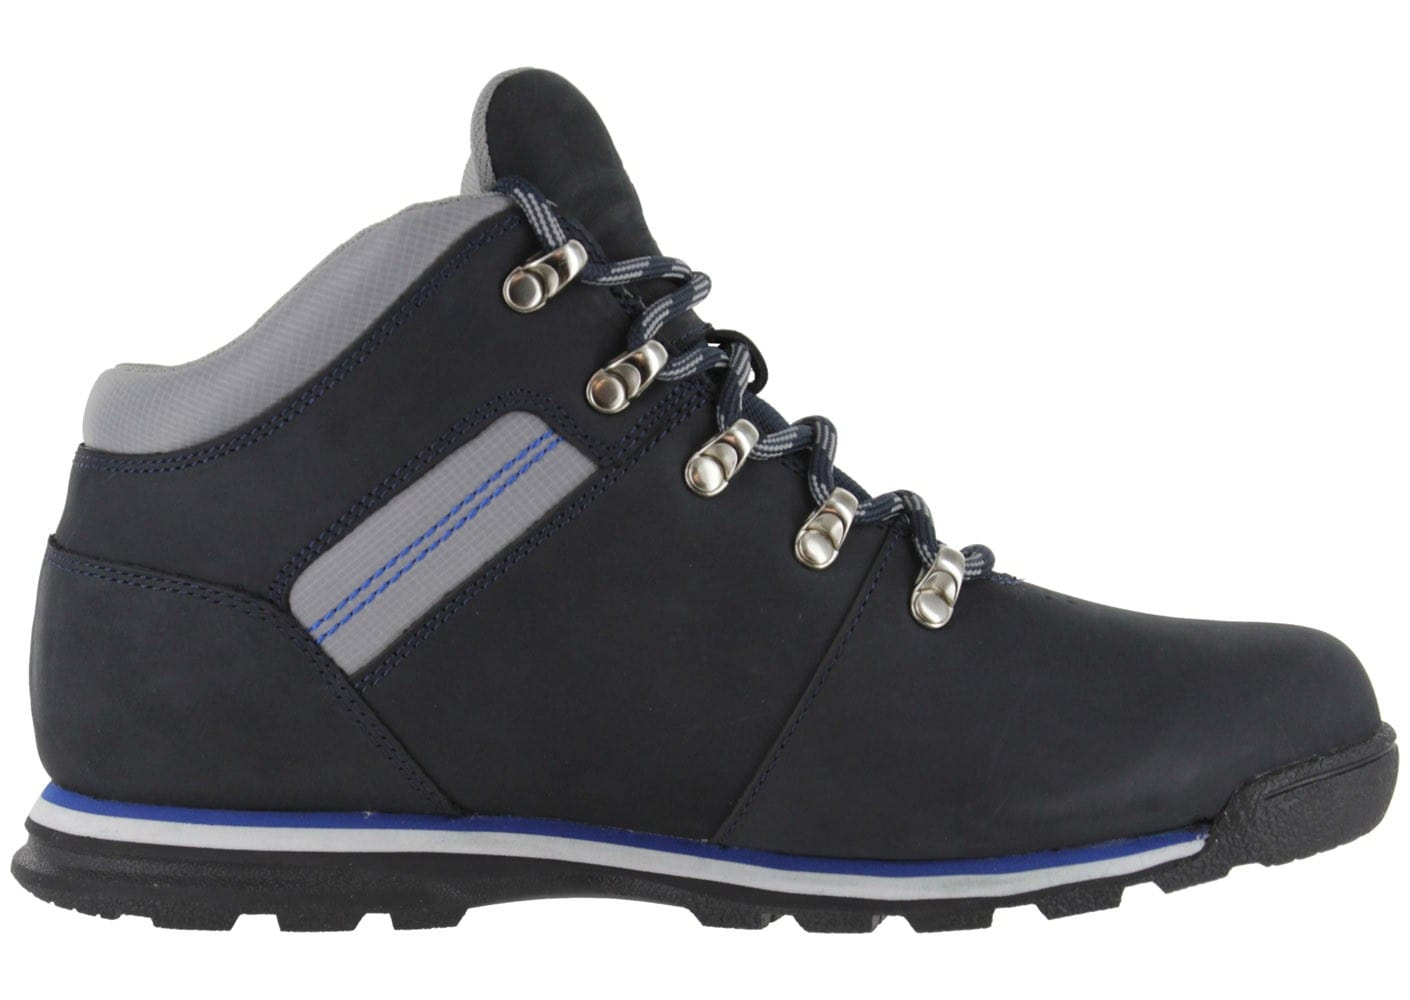 Chaussures Timberland Euro Hiker bleues homme Professionnel